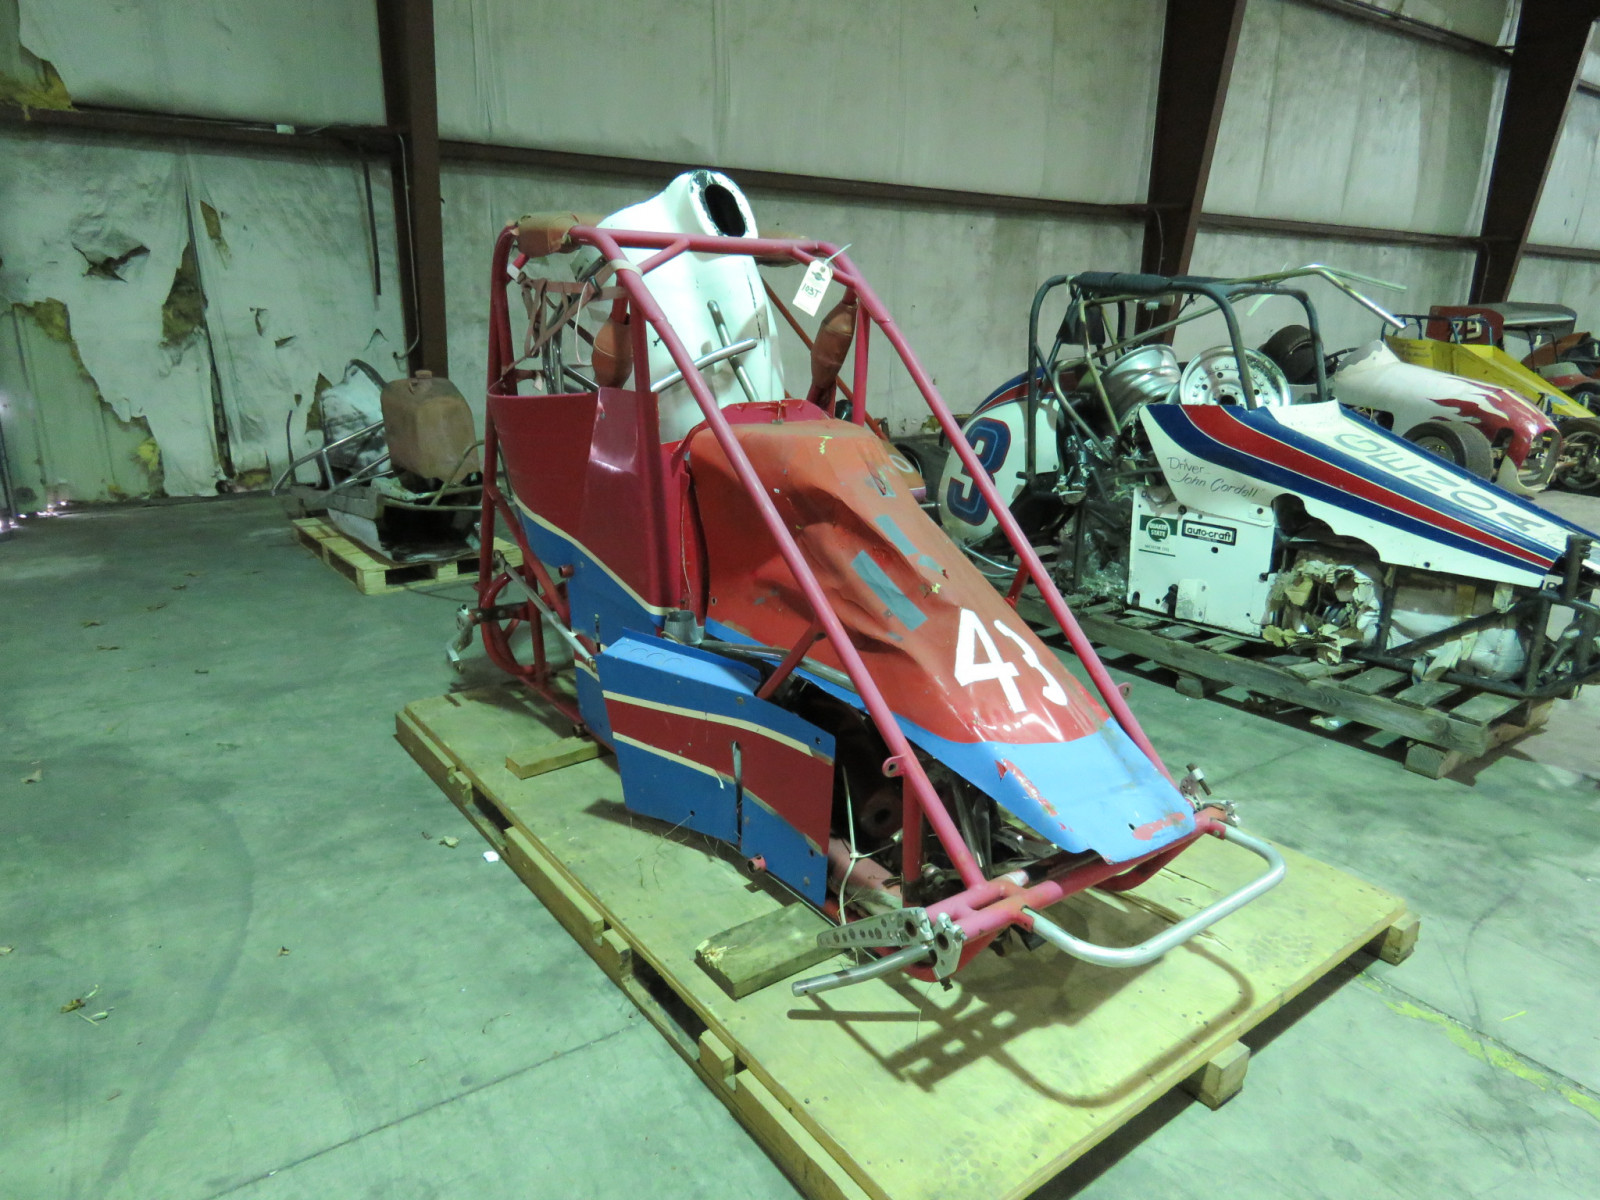 Vintage Home Built Midget Race Car - Image 3